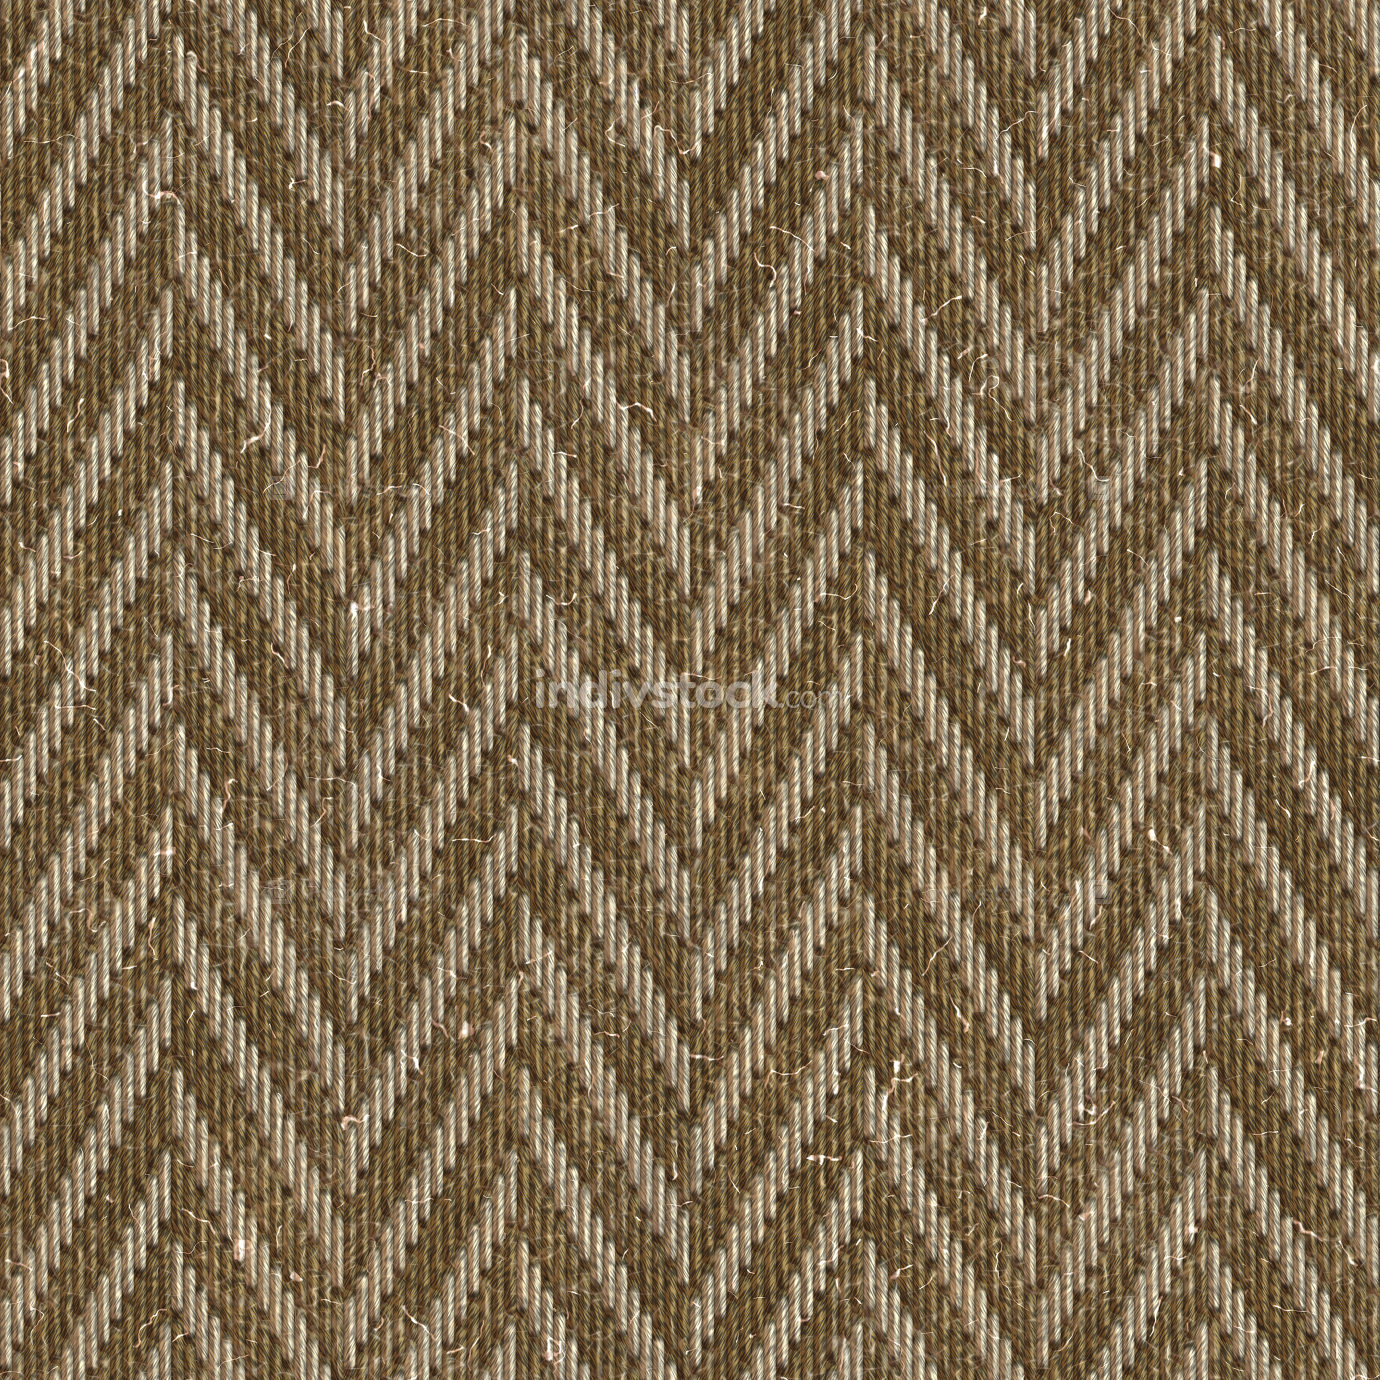 seamless tweed fabric texture